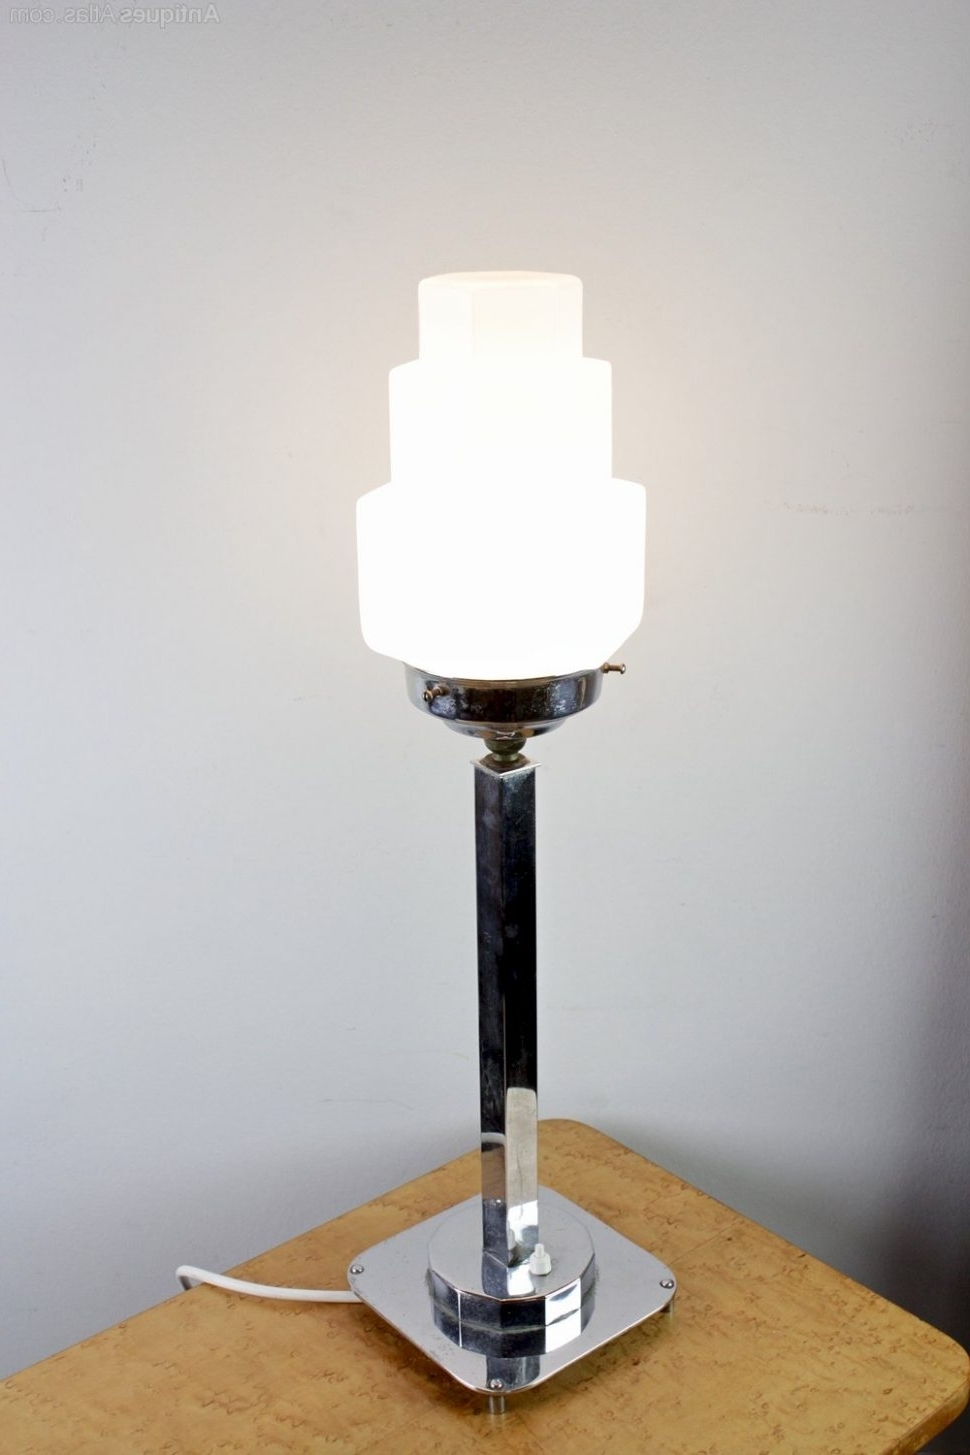 Livingroom : Antique Art Deco Table Lamps — Design The Categories Of For Well Liked Table Lamps For Living Room At Ebay (View 12 of 15)